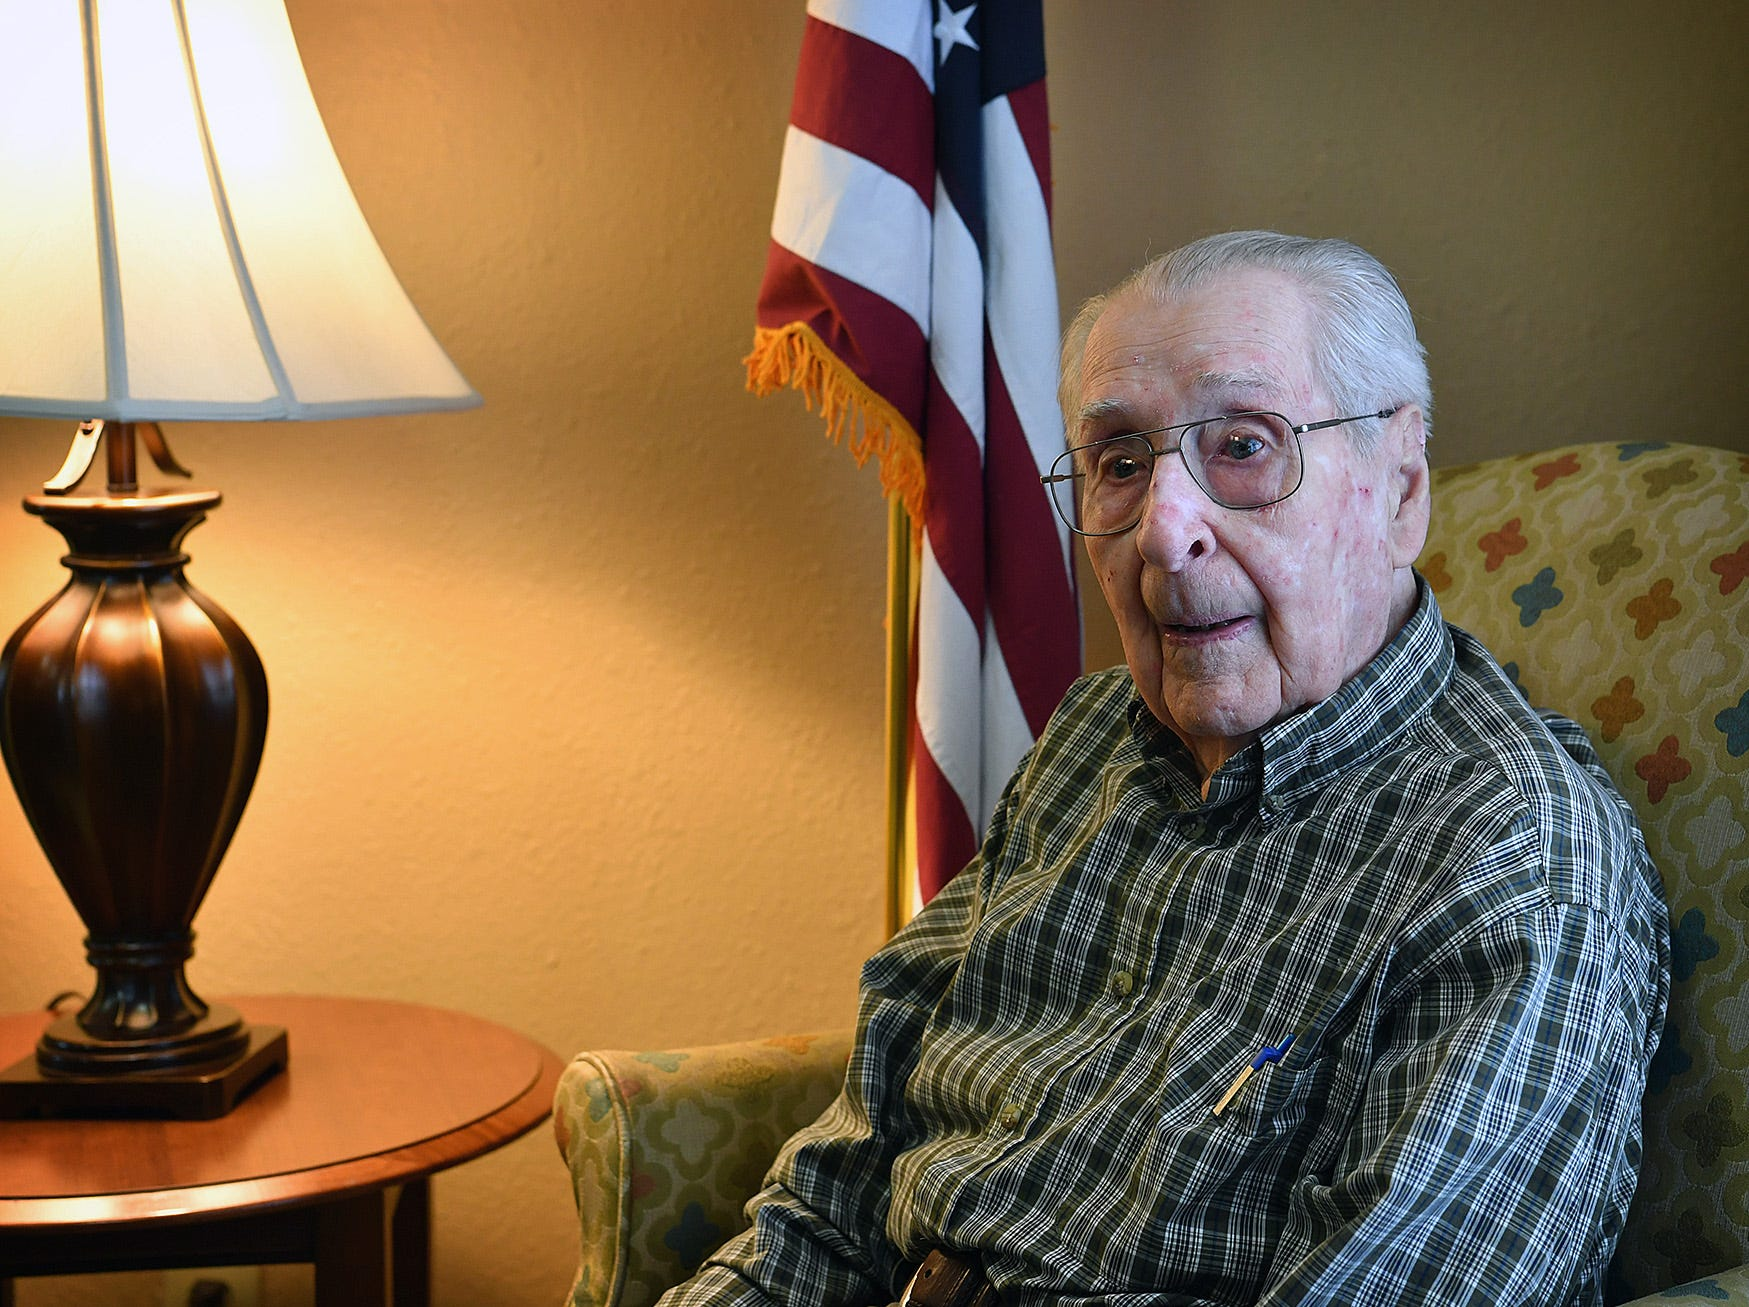 Joe Cuba, 99, talks about his service in the Army Air Corps during World War II. The veteran is hoping to receive 100 birthday cards by his 100th birthday on March 2.